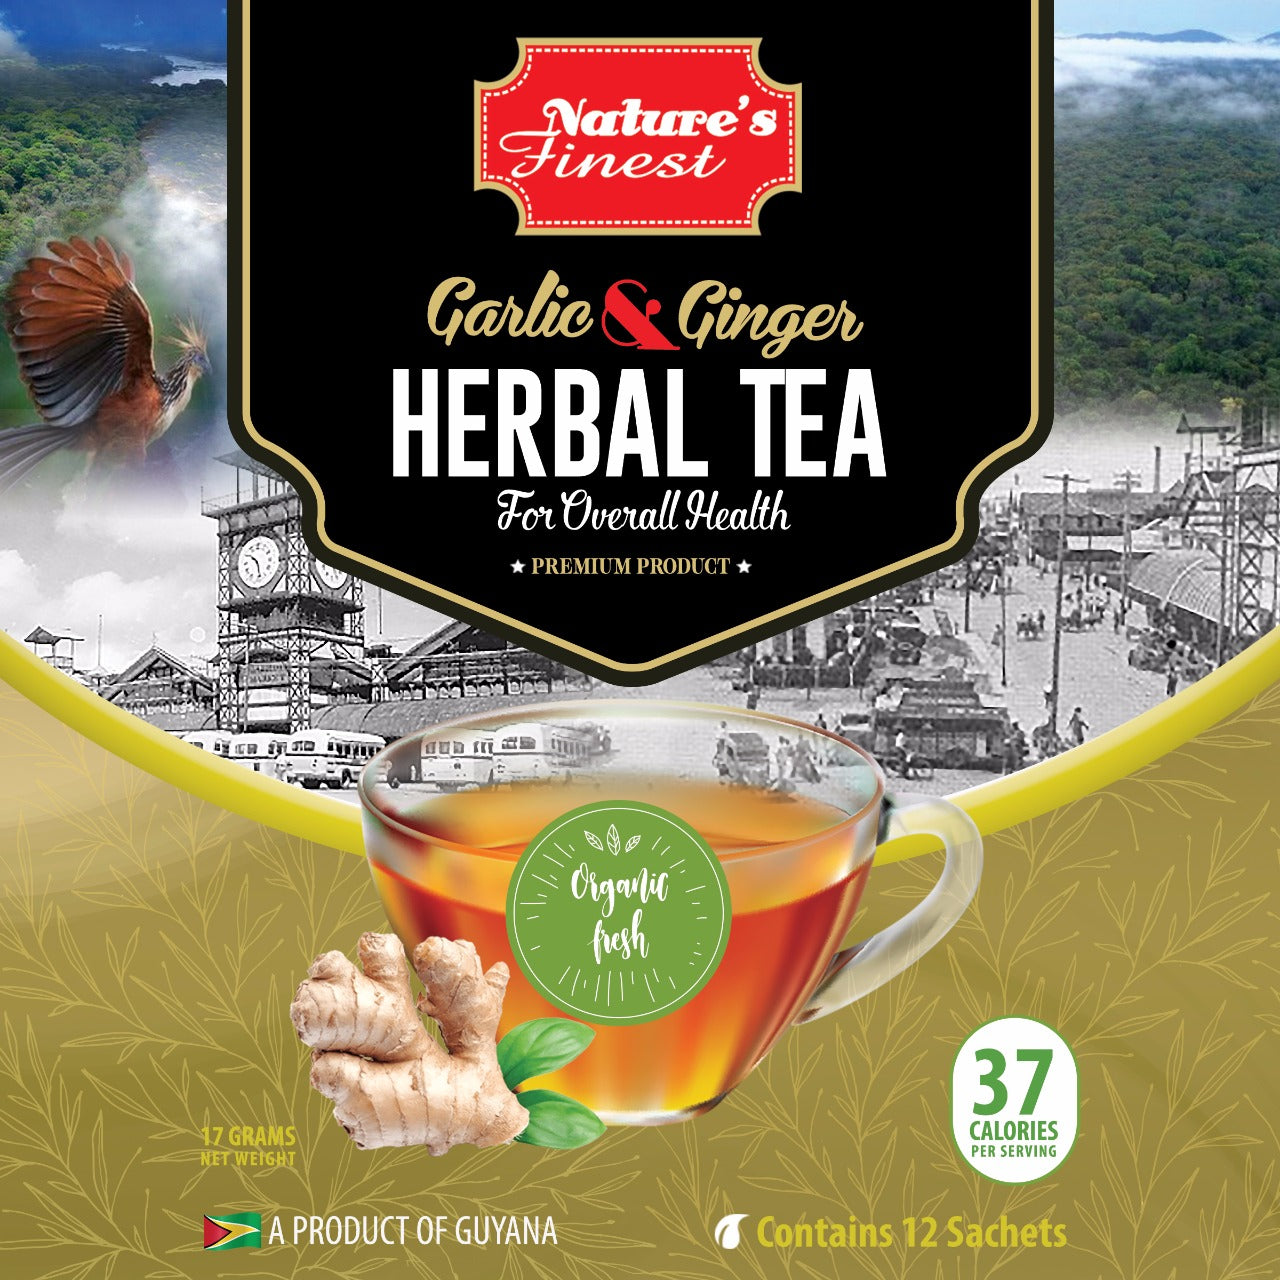 Garlic & Ginger Tea